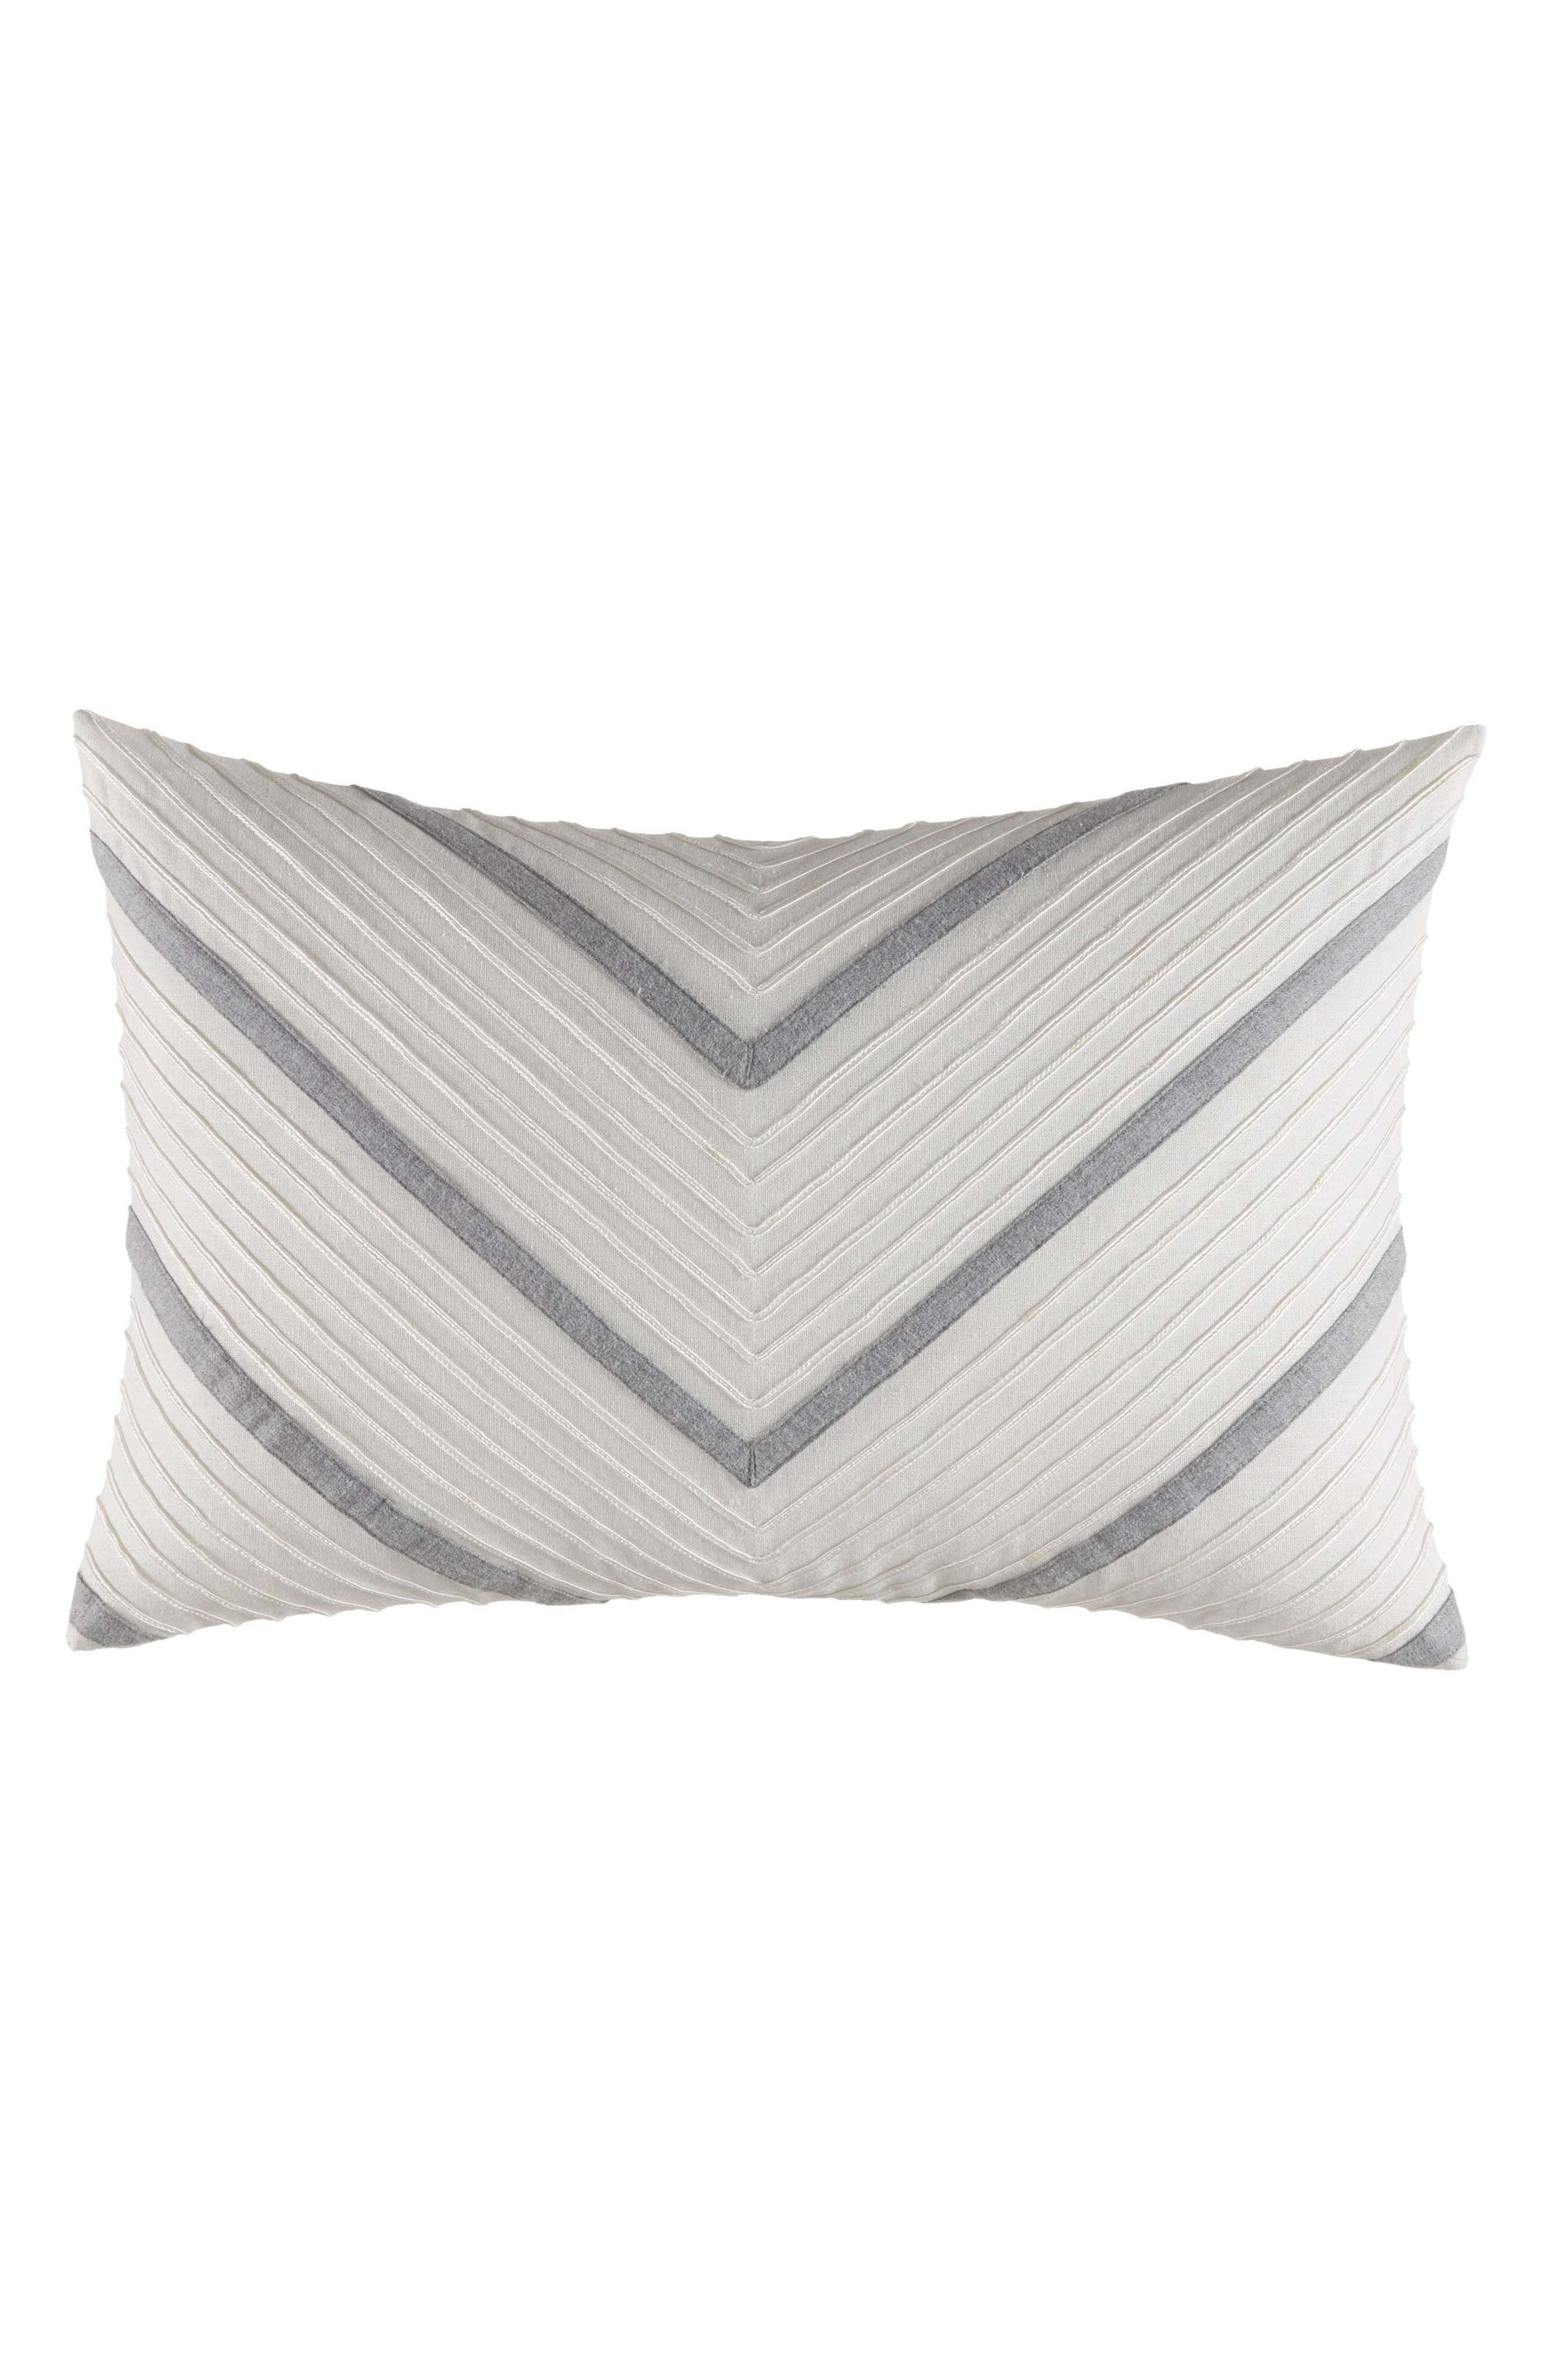 NAUTICA,                             Clearview Chevron Breakfast Pillow,                             Main thumbnail 1, color,                             IVORY